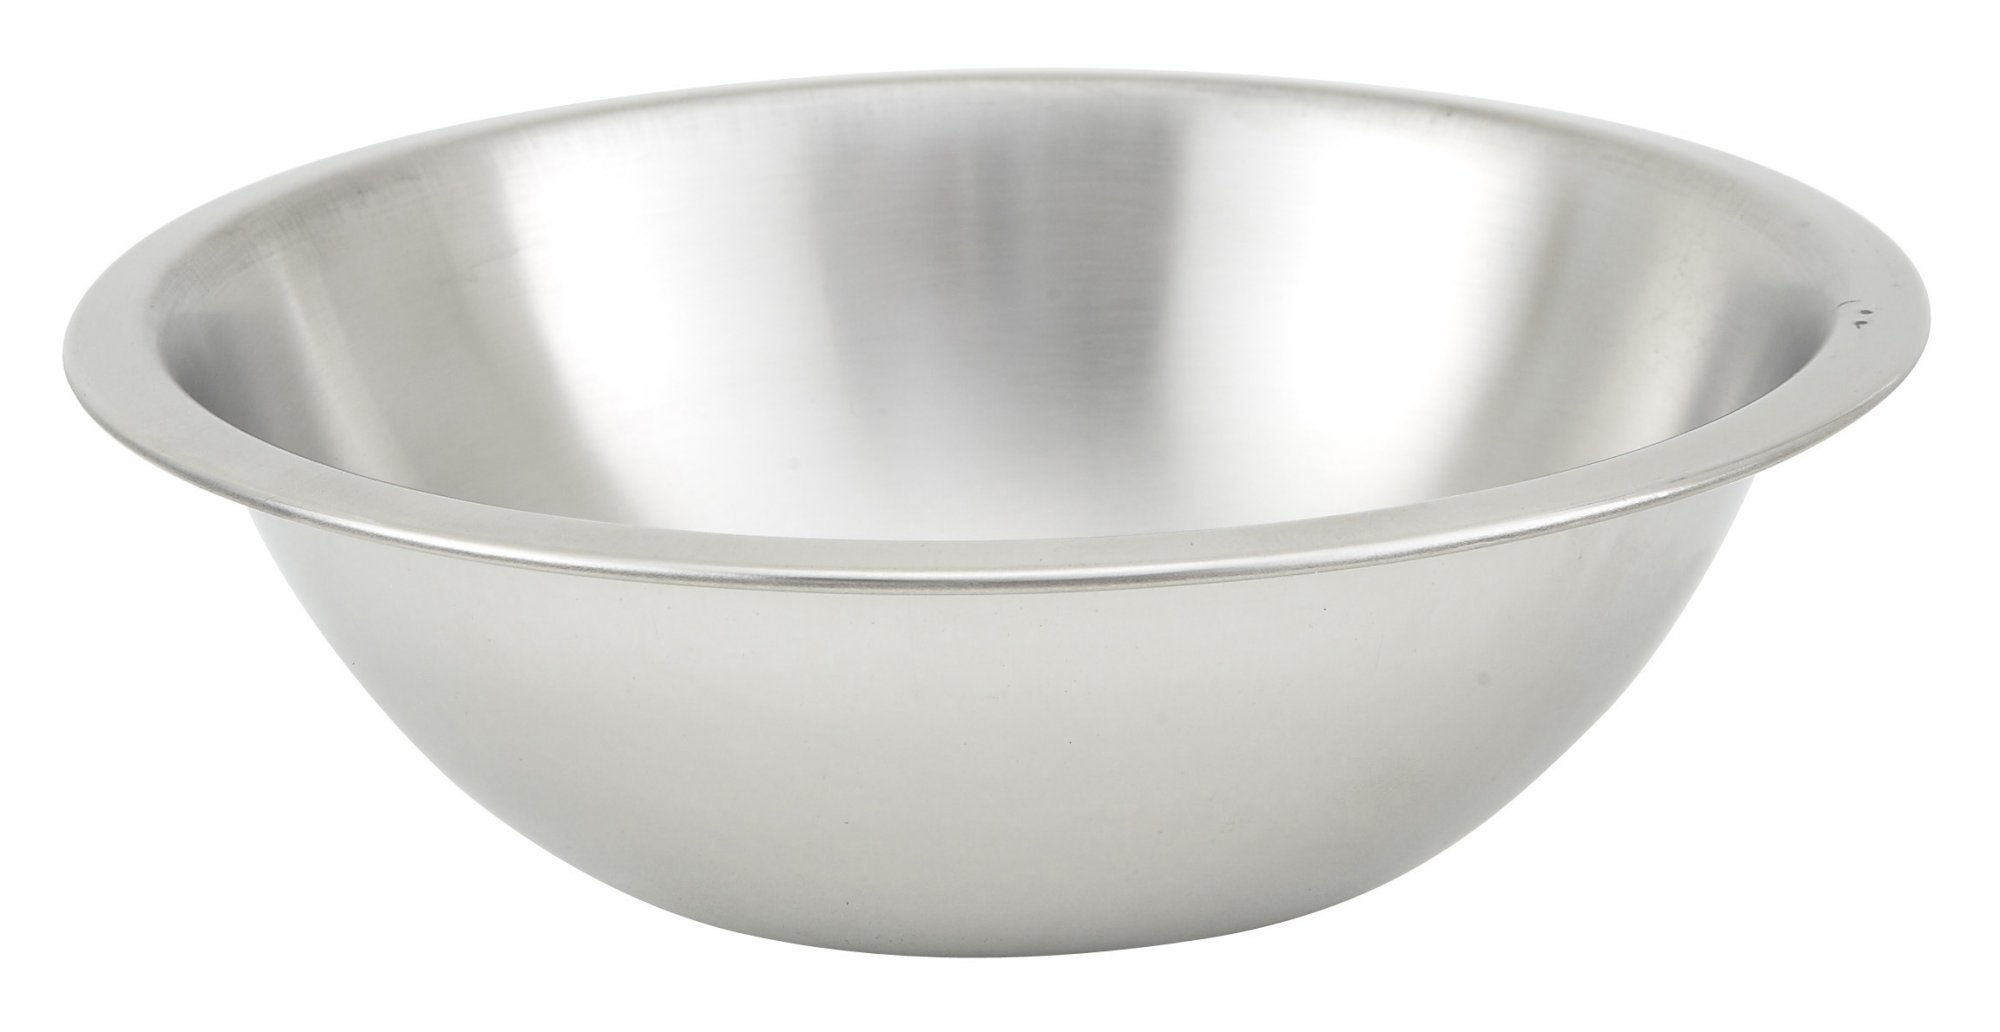 1-1/2qt Mixing Bowl, Shallow, Heavy-duty S/S,0.65mm